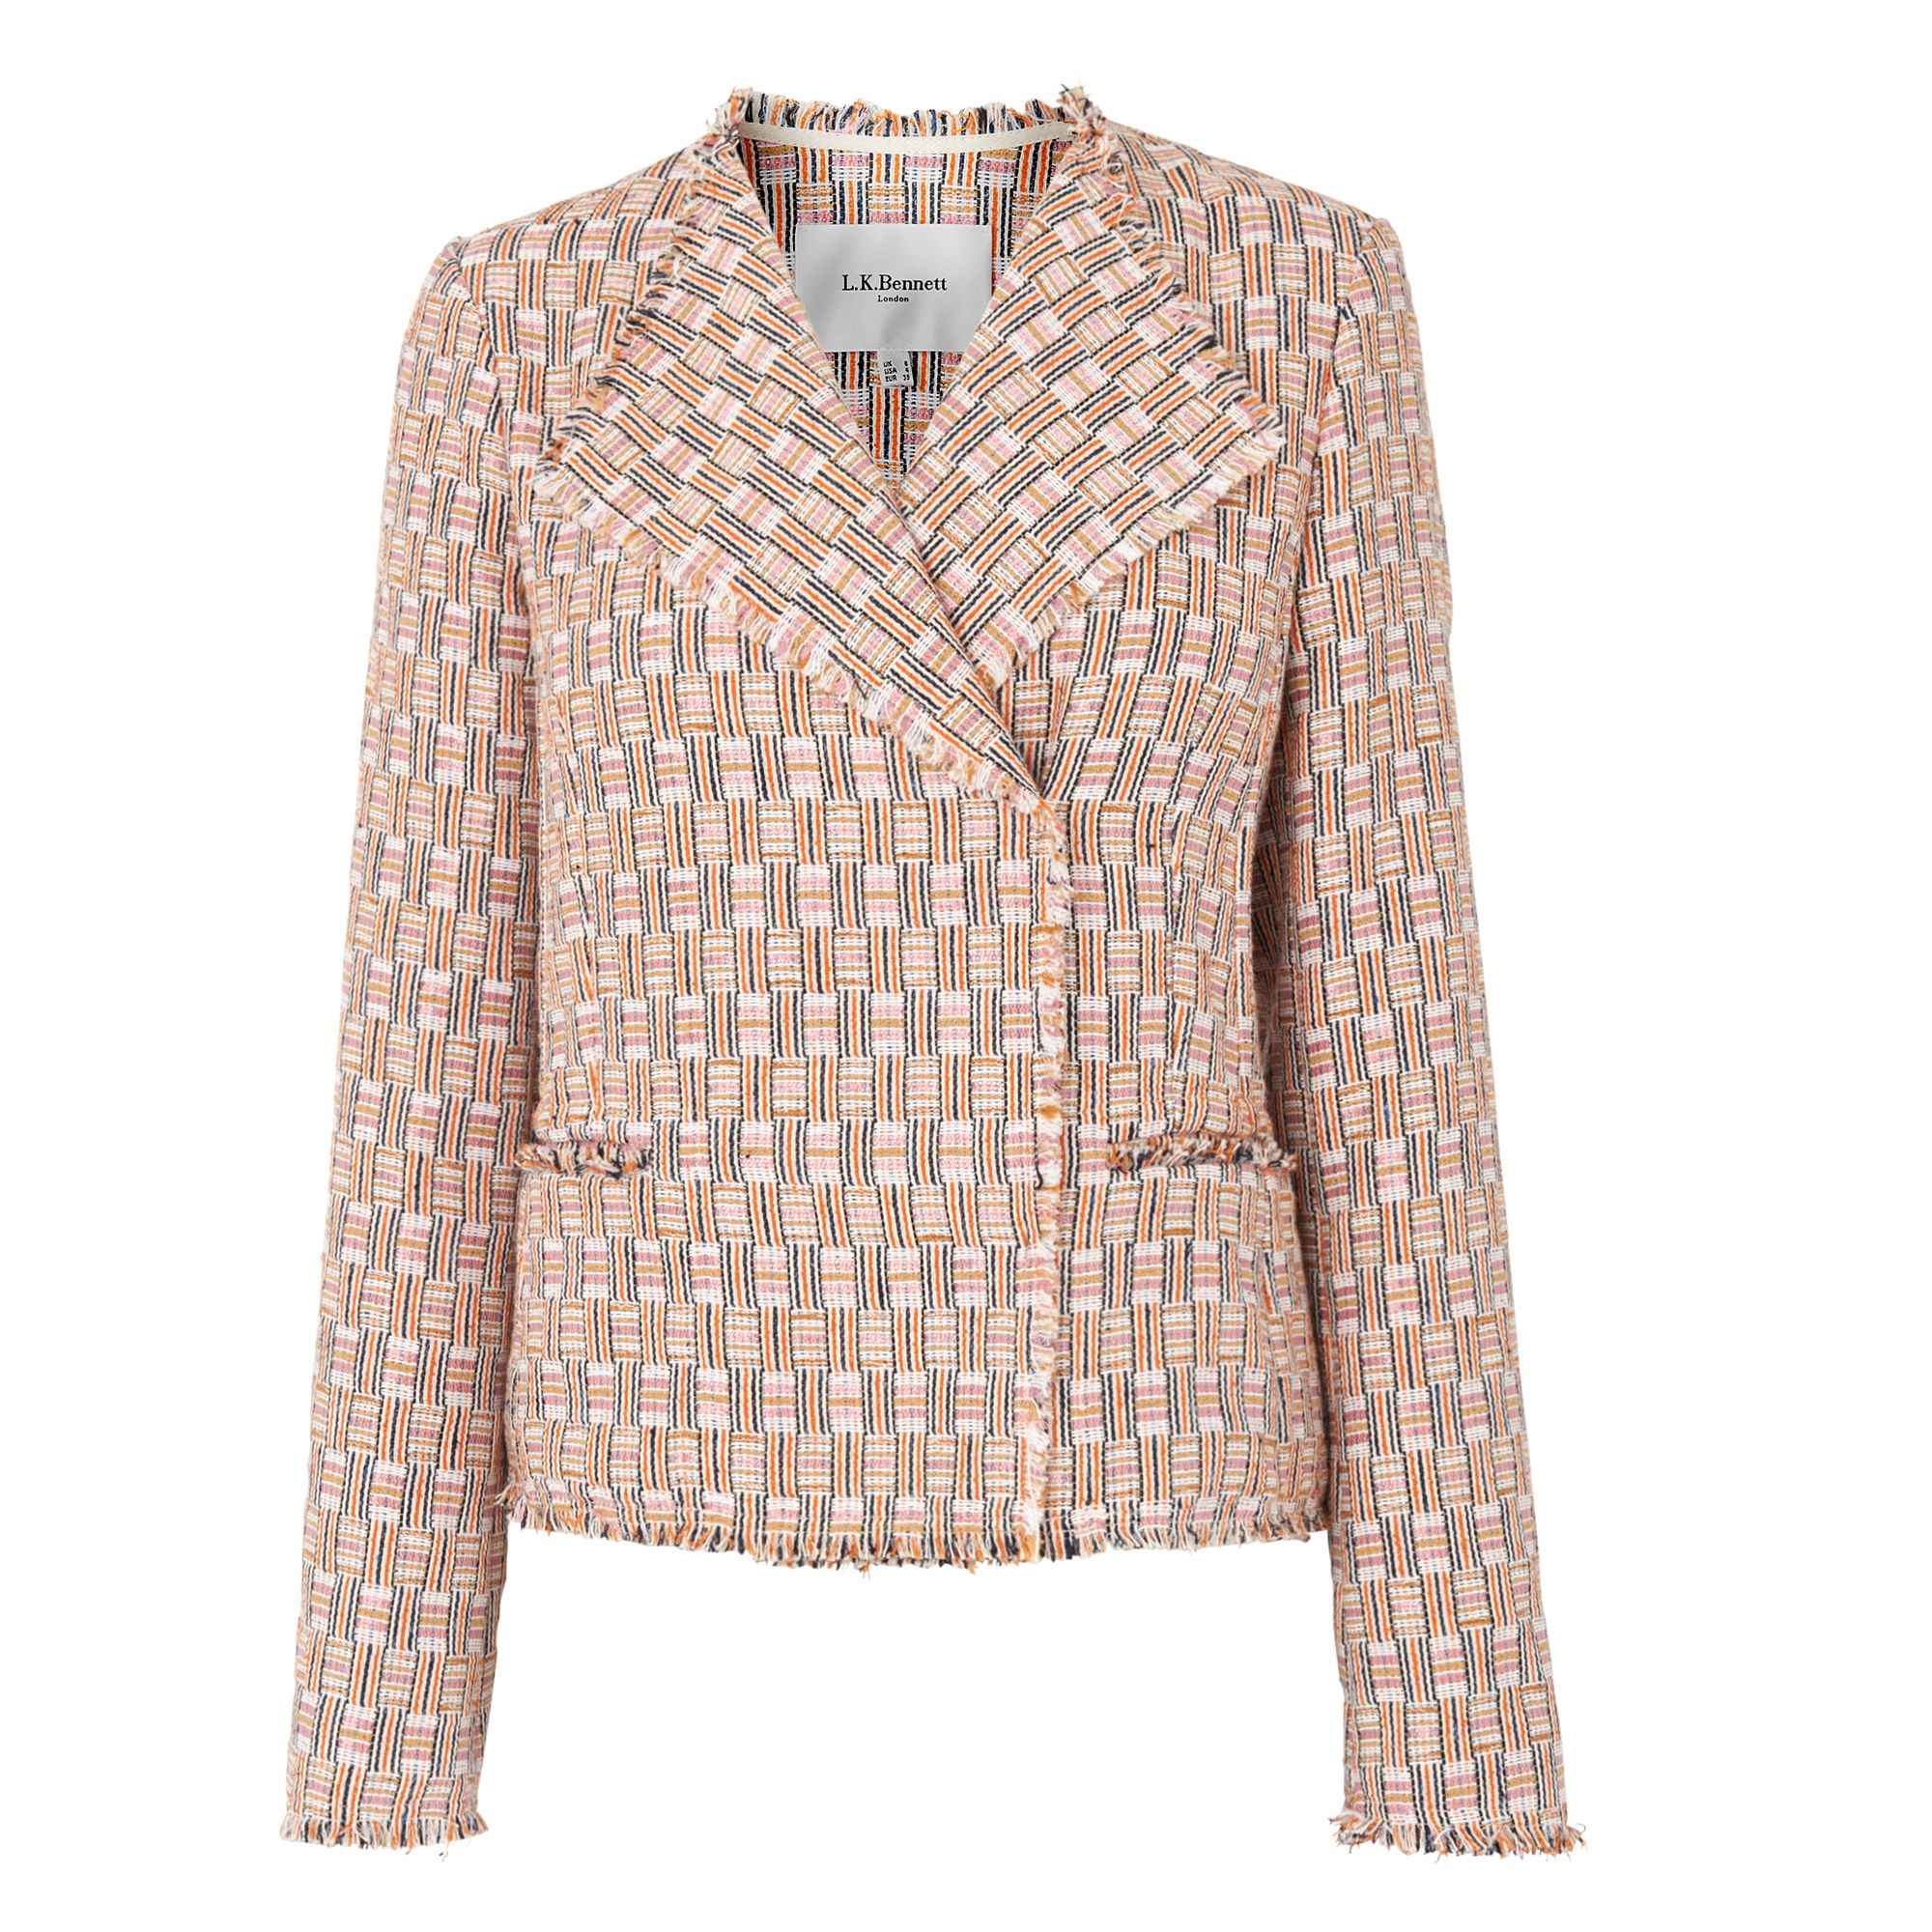 L.K. Bennett Heather Block Tweed Jackets, Pink